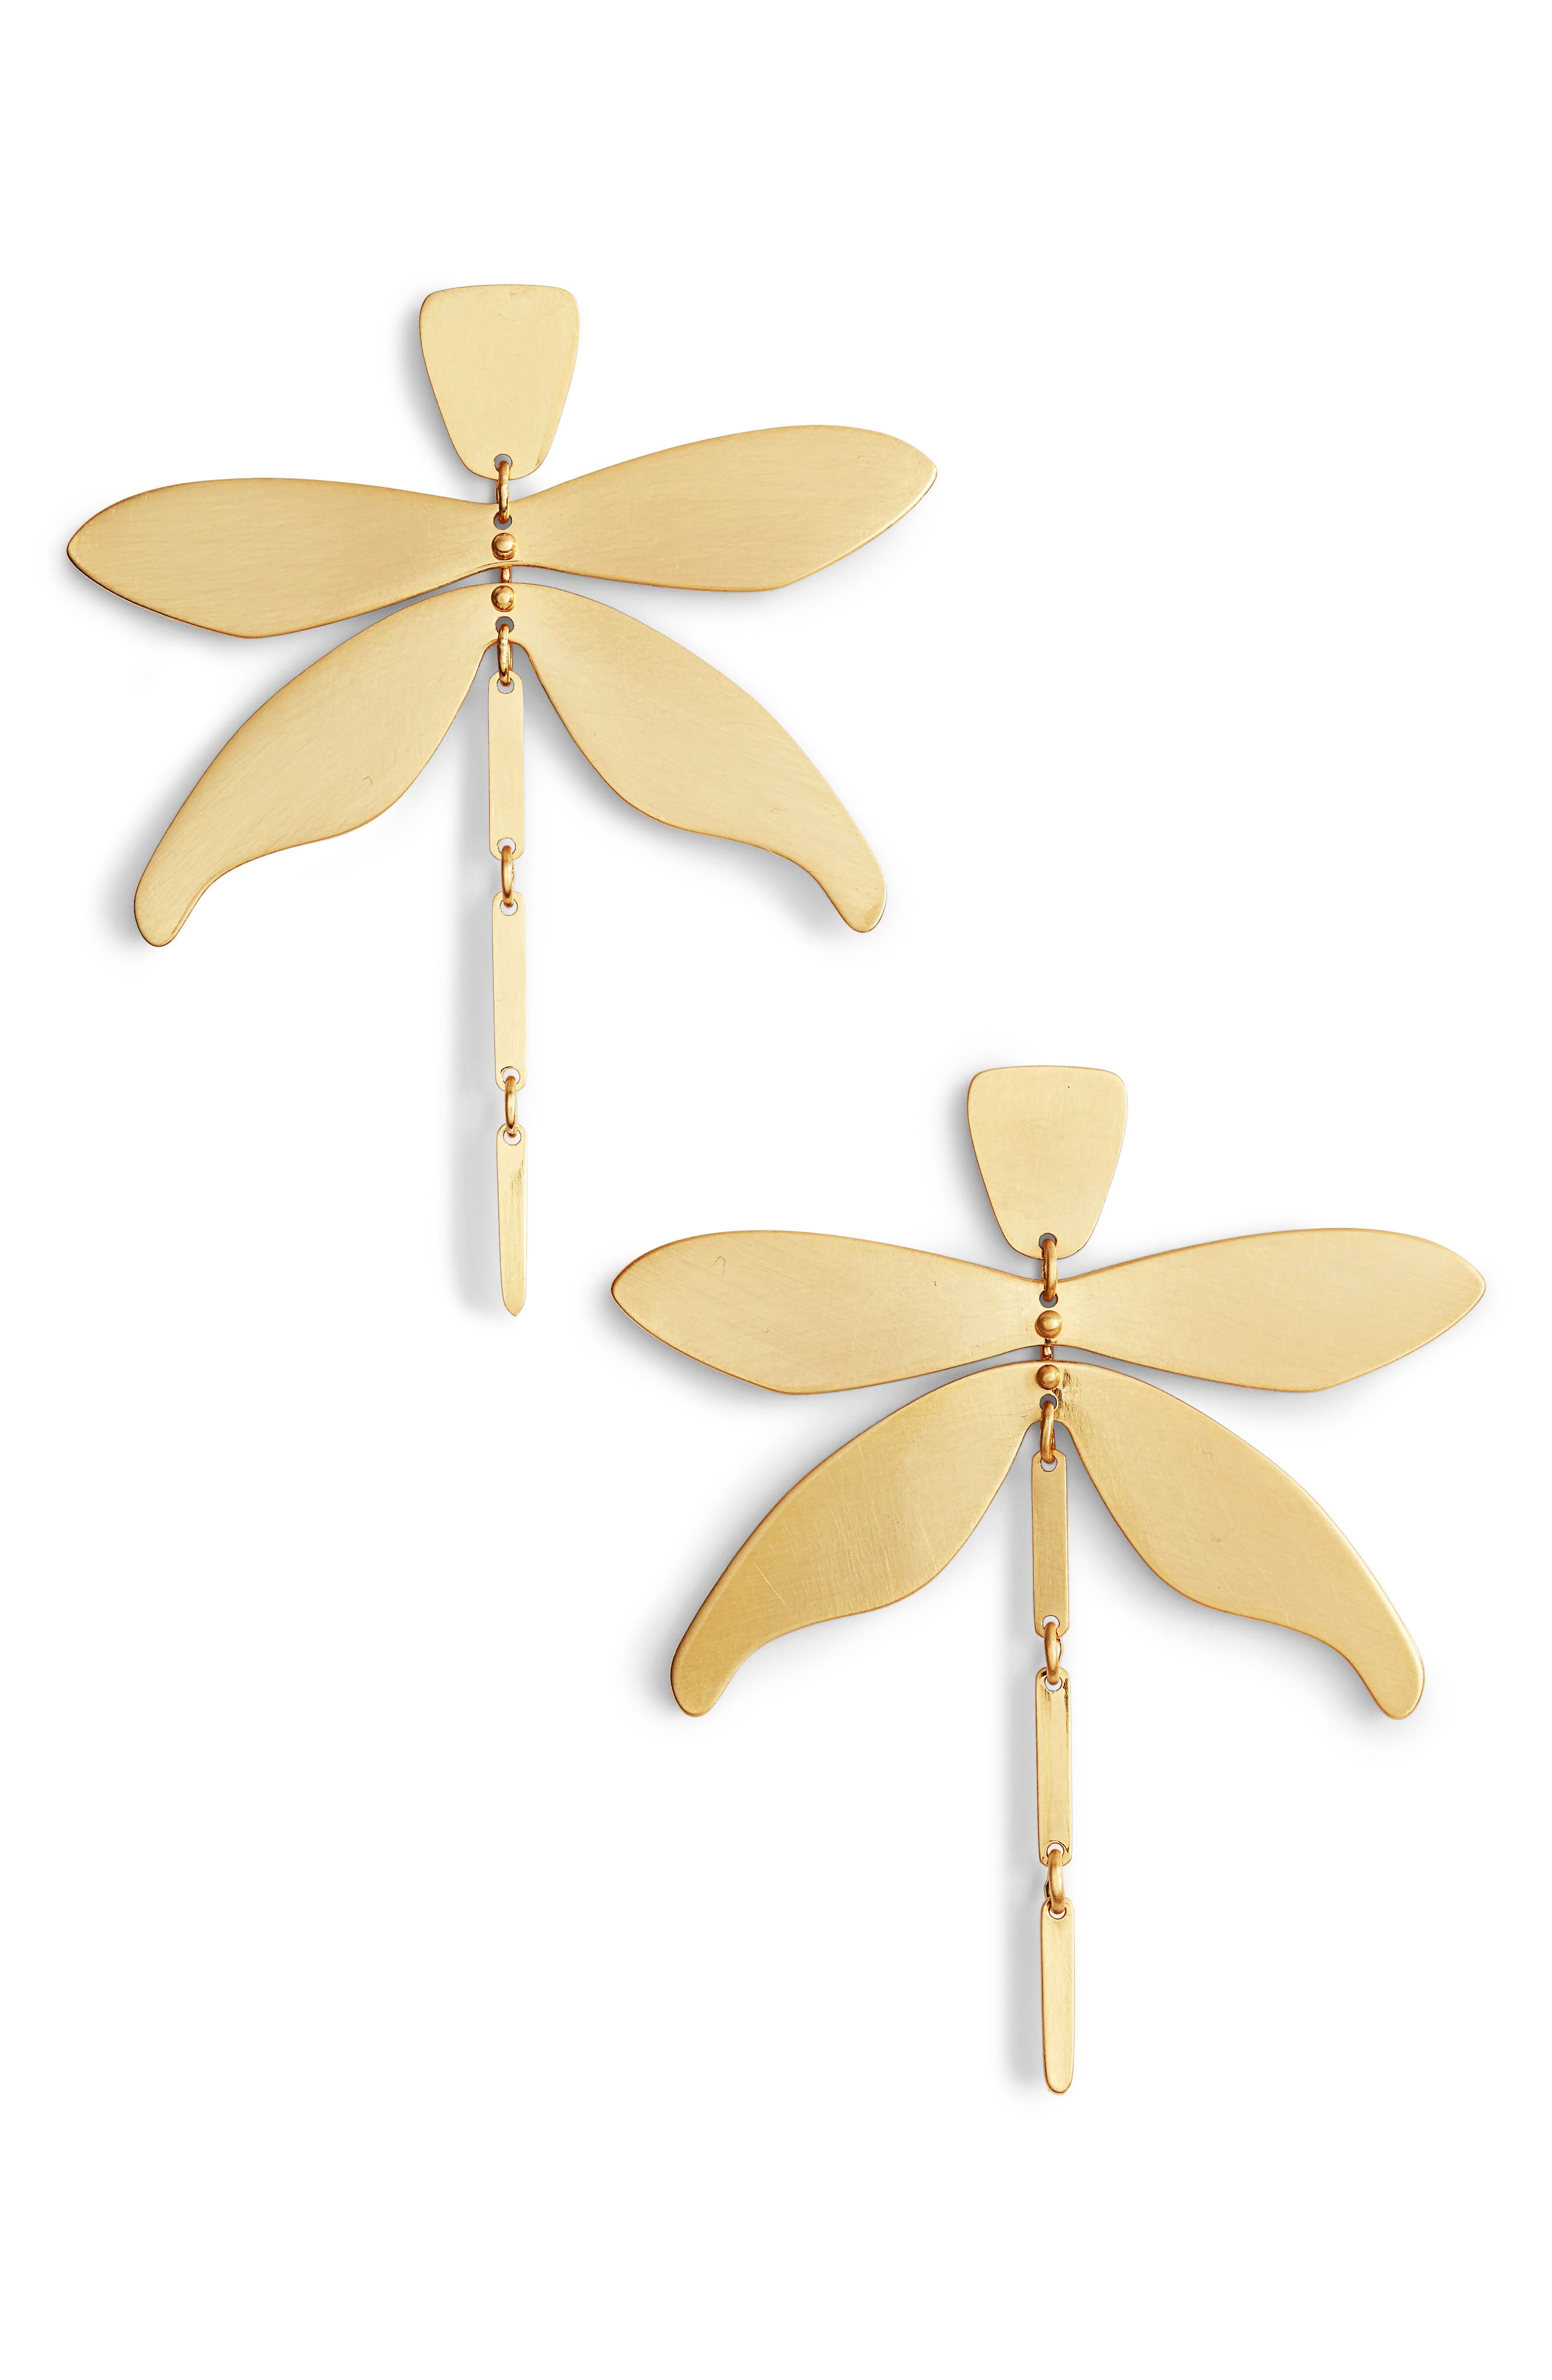 Articulated Dragonfly Earrings,                             Main thumbnail 4, color,